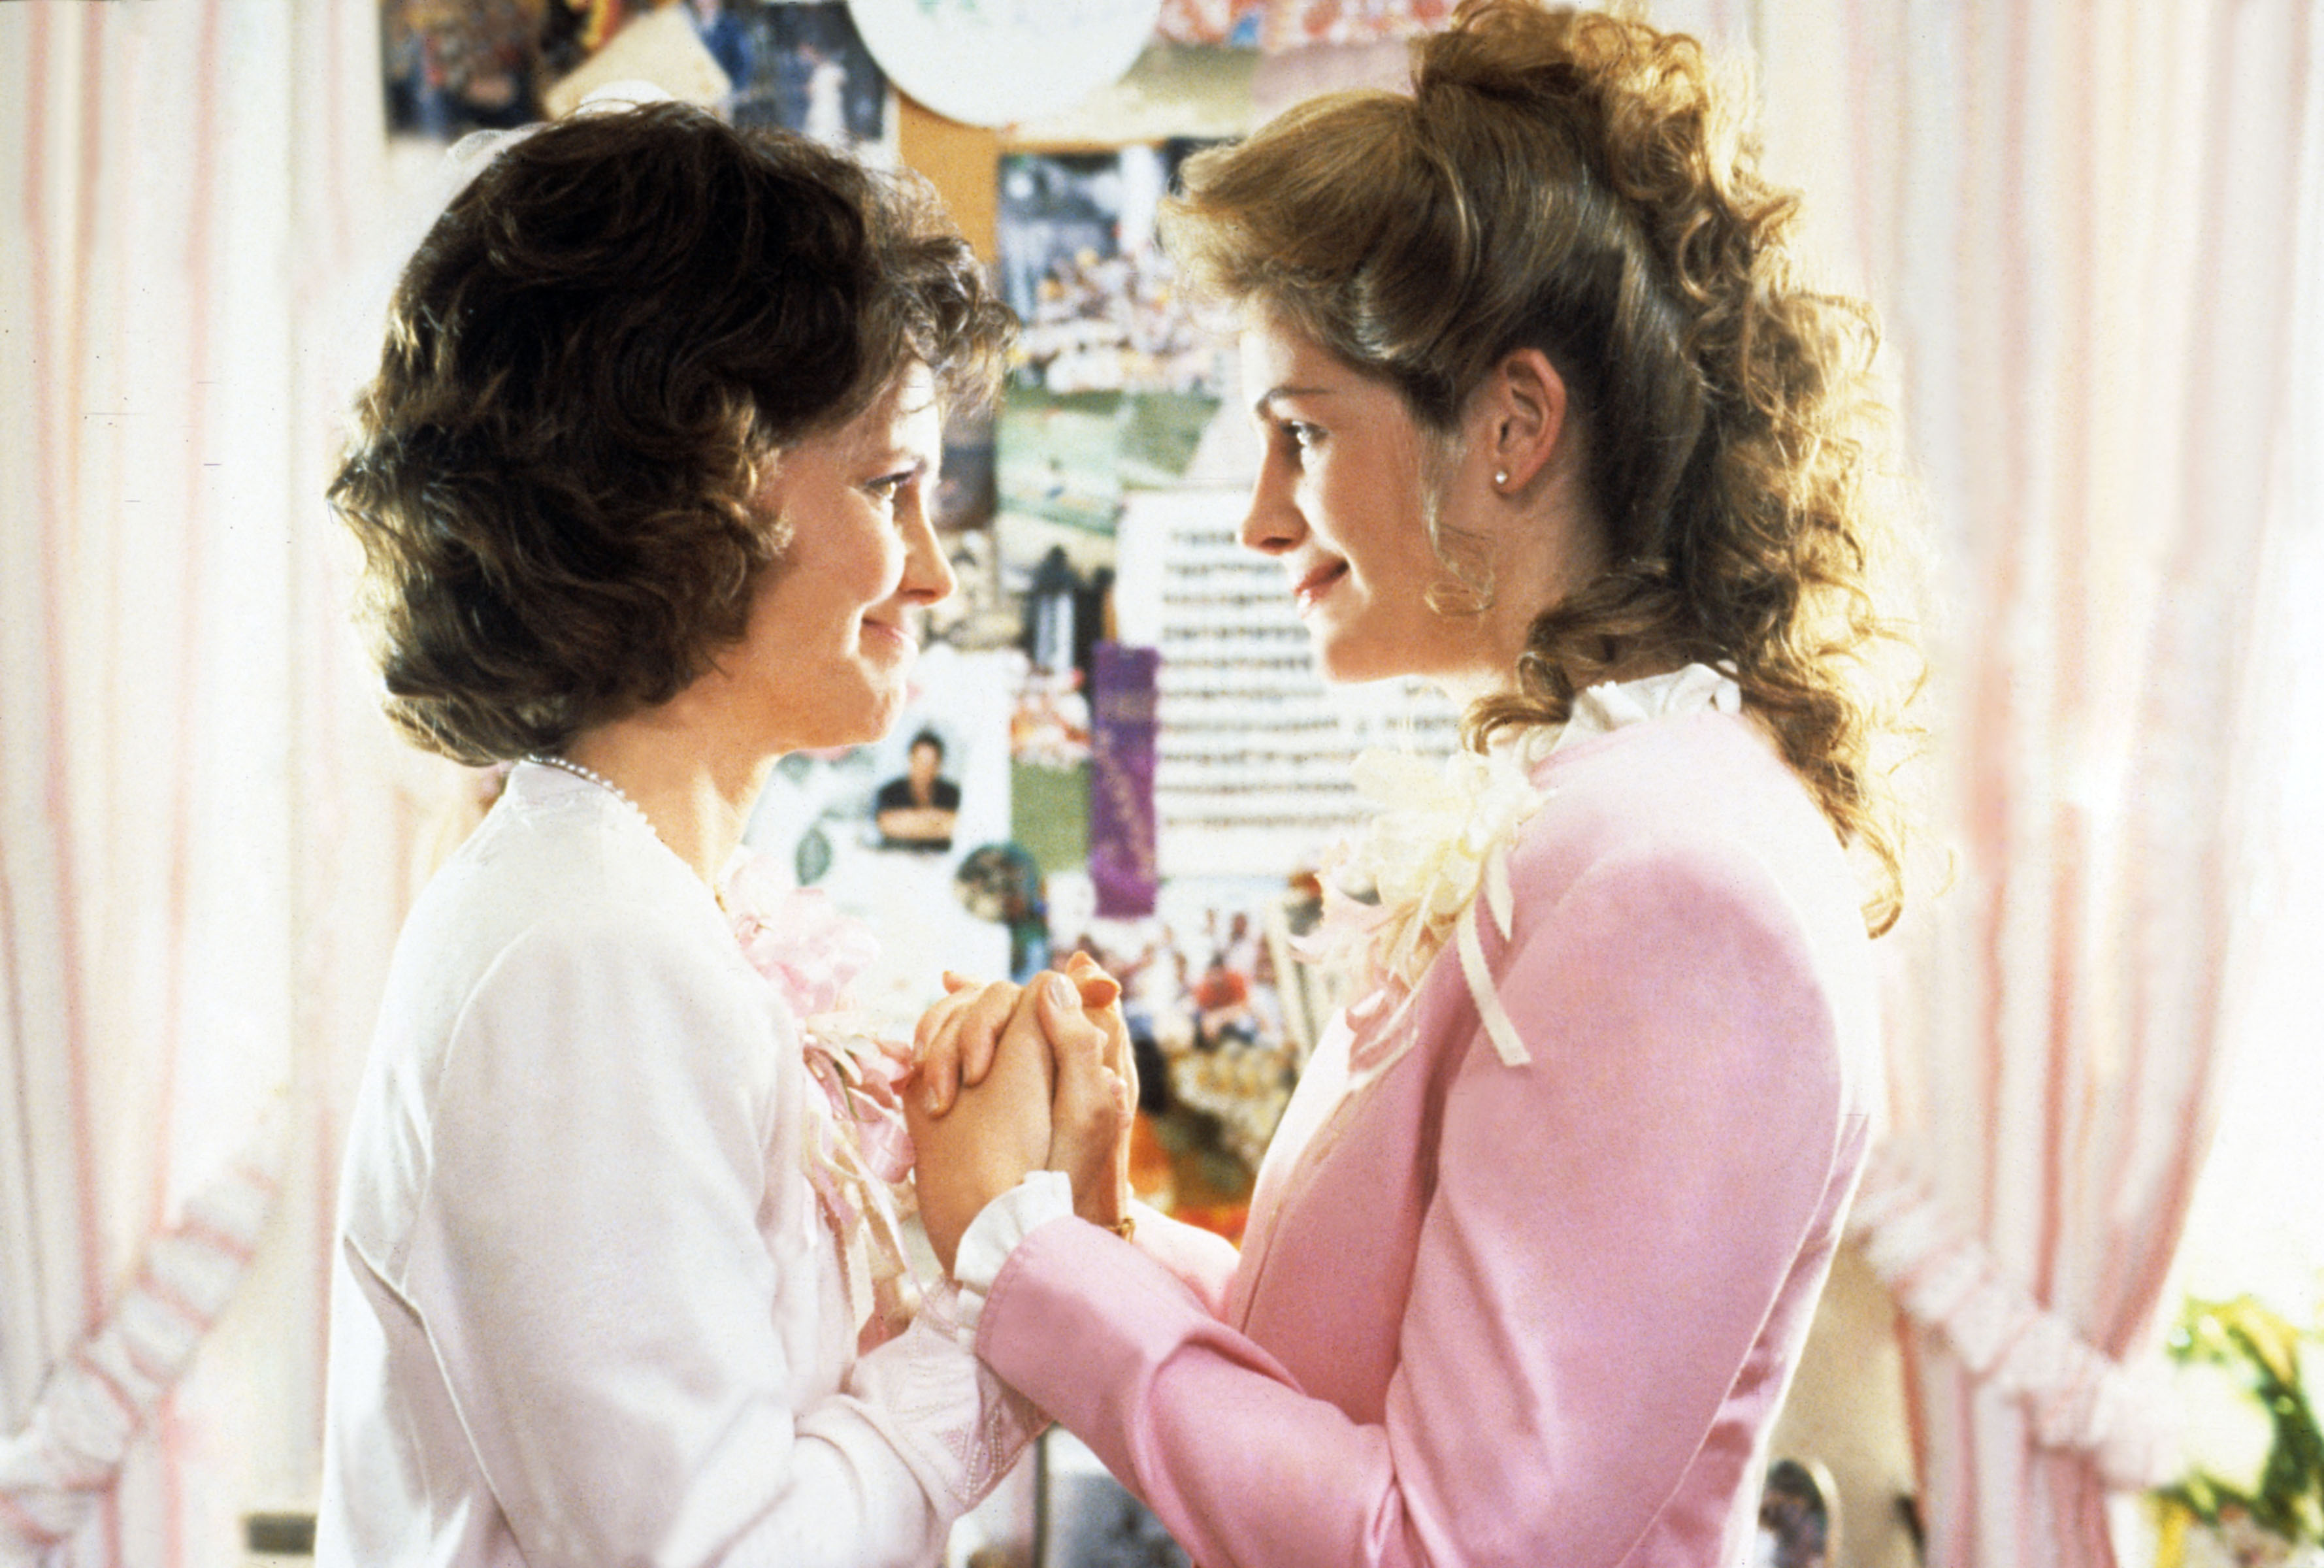 STEEL MAGNOLIAS, l-r: Sally Field, Julia Roberts, 1989. ©TriStar Pictures/courtesy Everett Collection